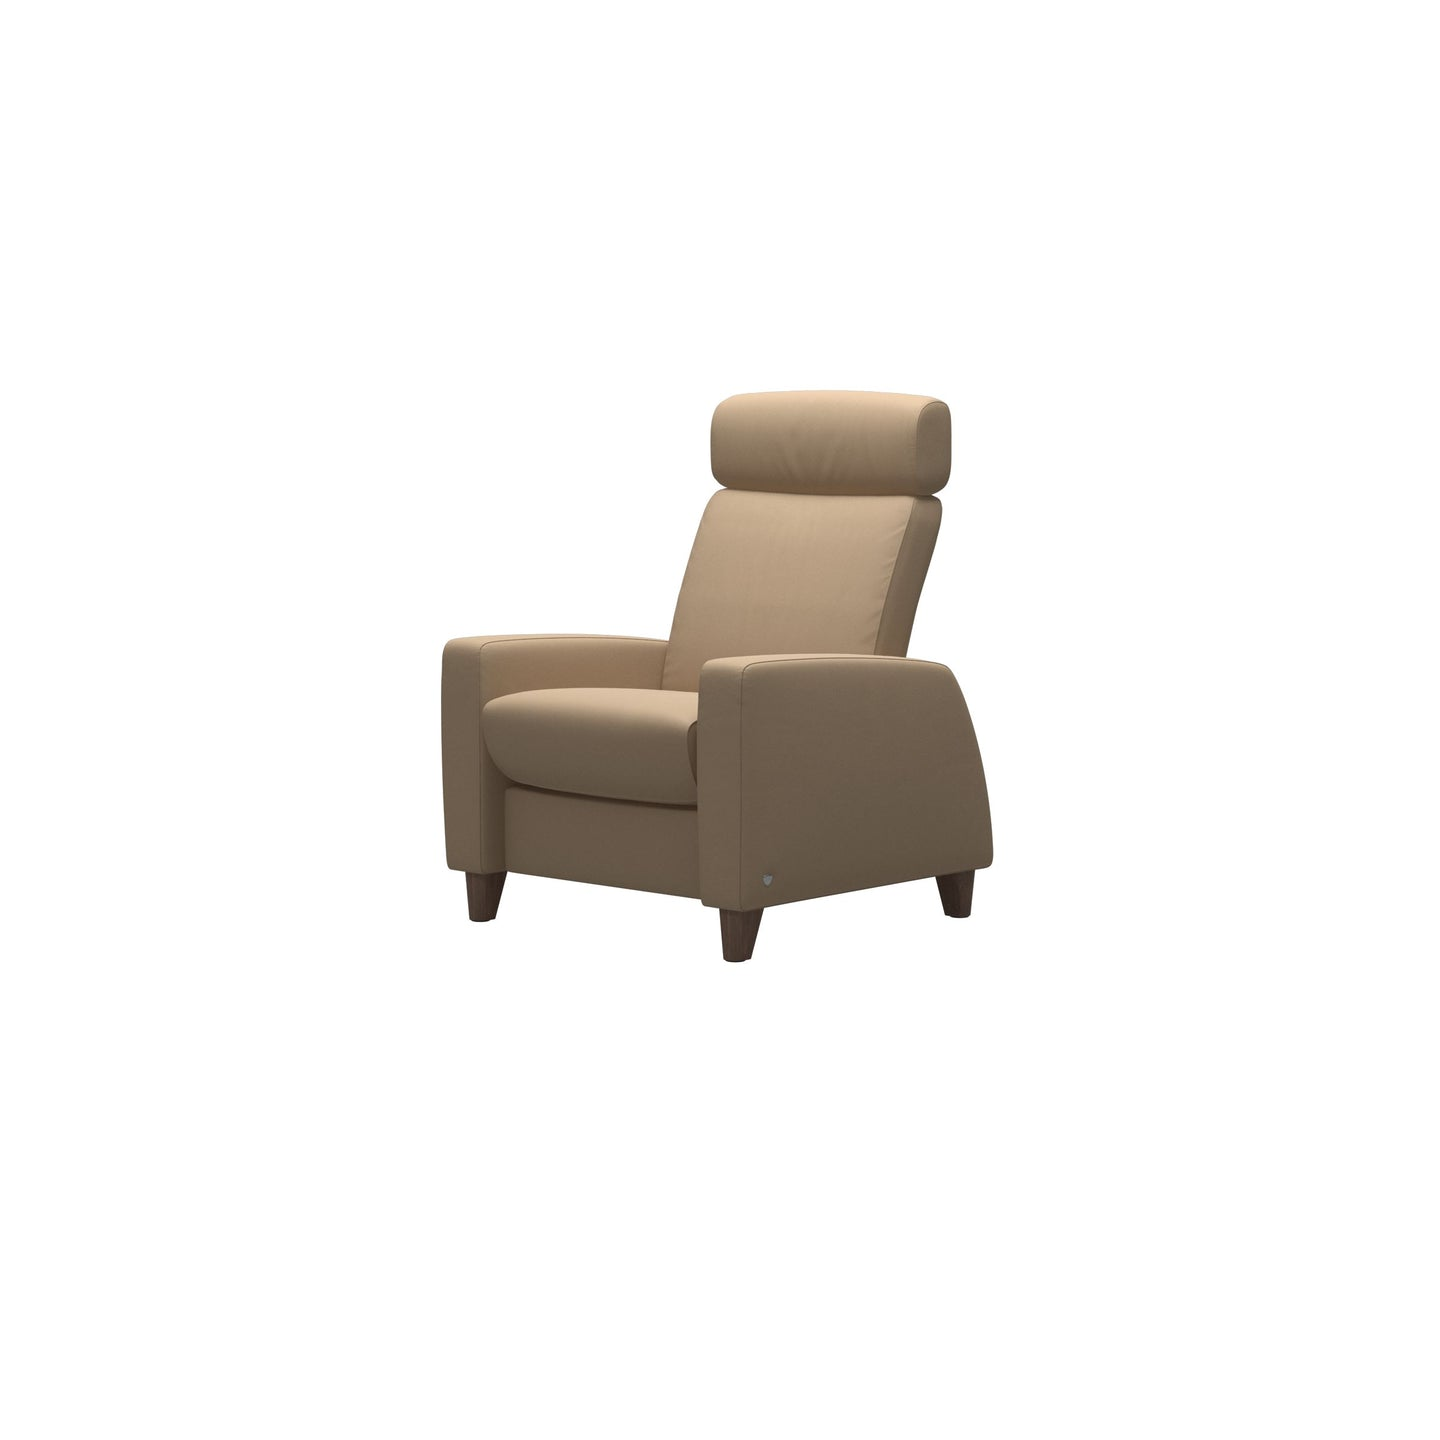 Stressless® Arion 19 A10 chair High back